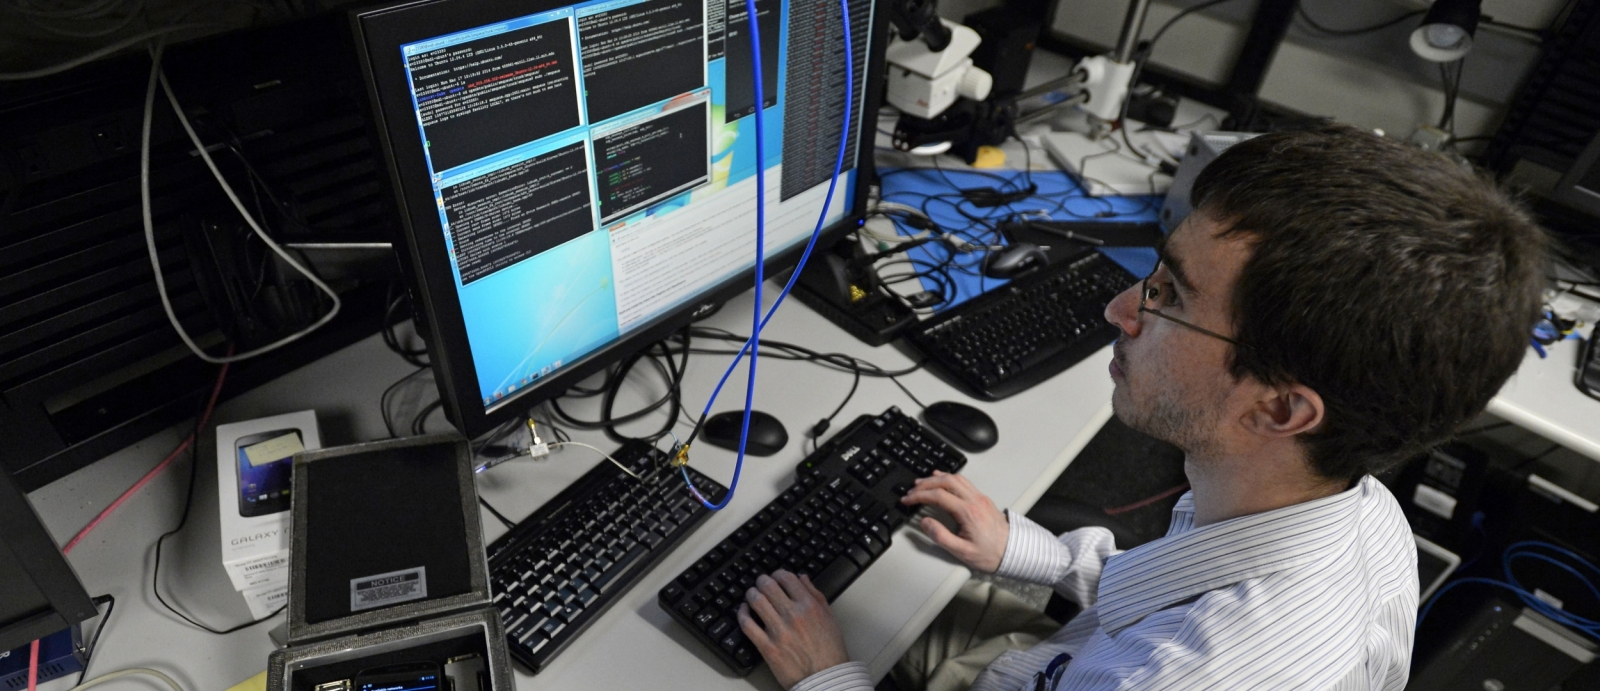 In the mobile device laboratory, a researcher in the Cyber Systems and Operations Group investigates the cyber-electromagnetic environment for handheld devices and wireless communication.